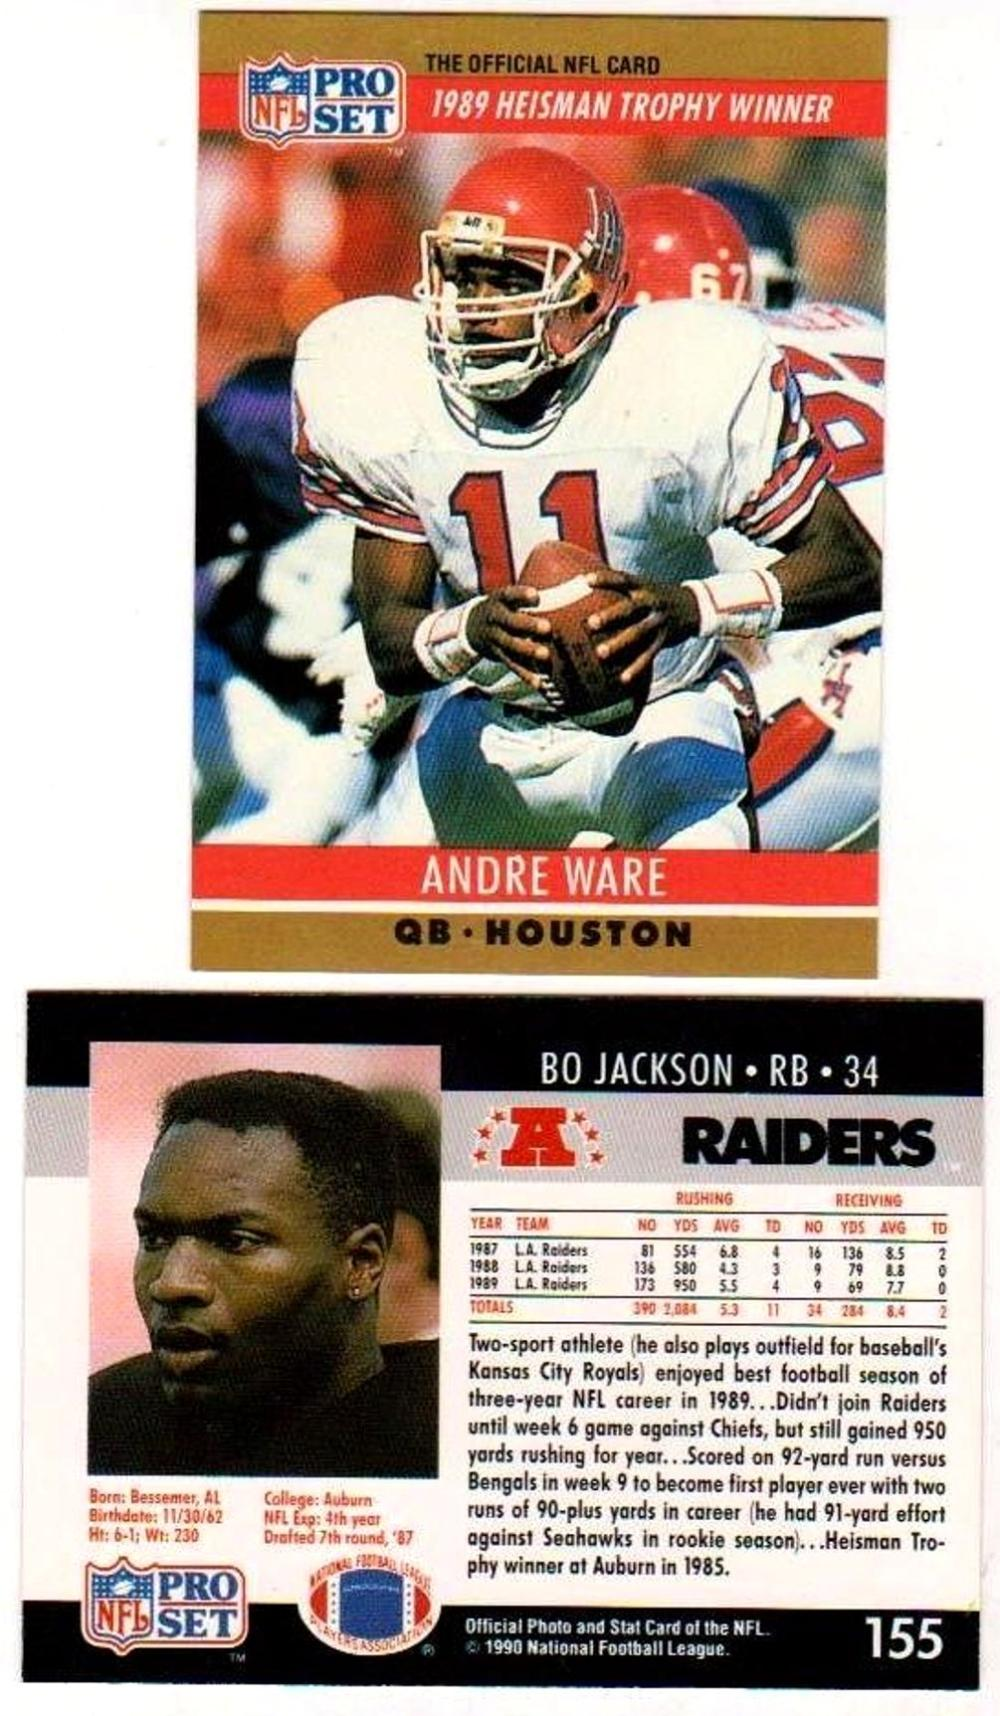 Lot Of 10 1990 Pro Set Wrong Back Errors - Andre Ware Front, Bo Jackson Back